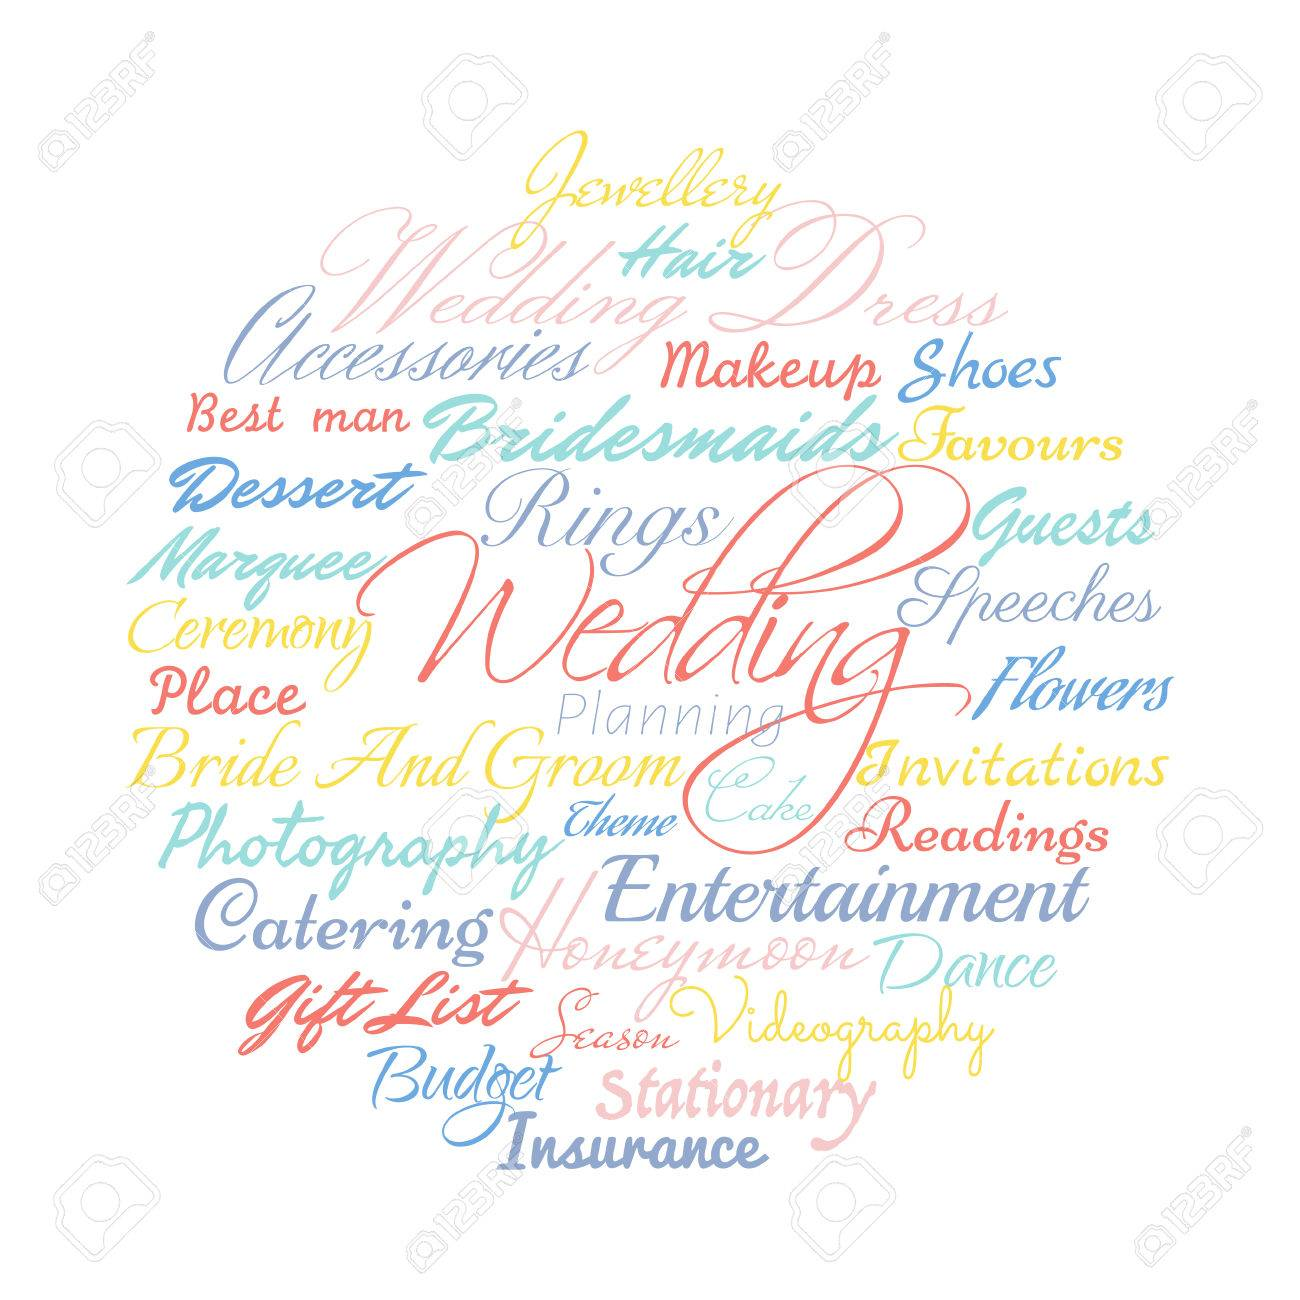 wedding planning related words vector cloud illustration royalty